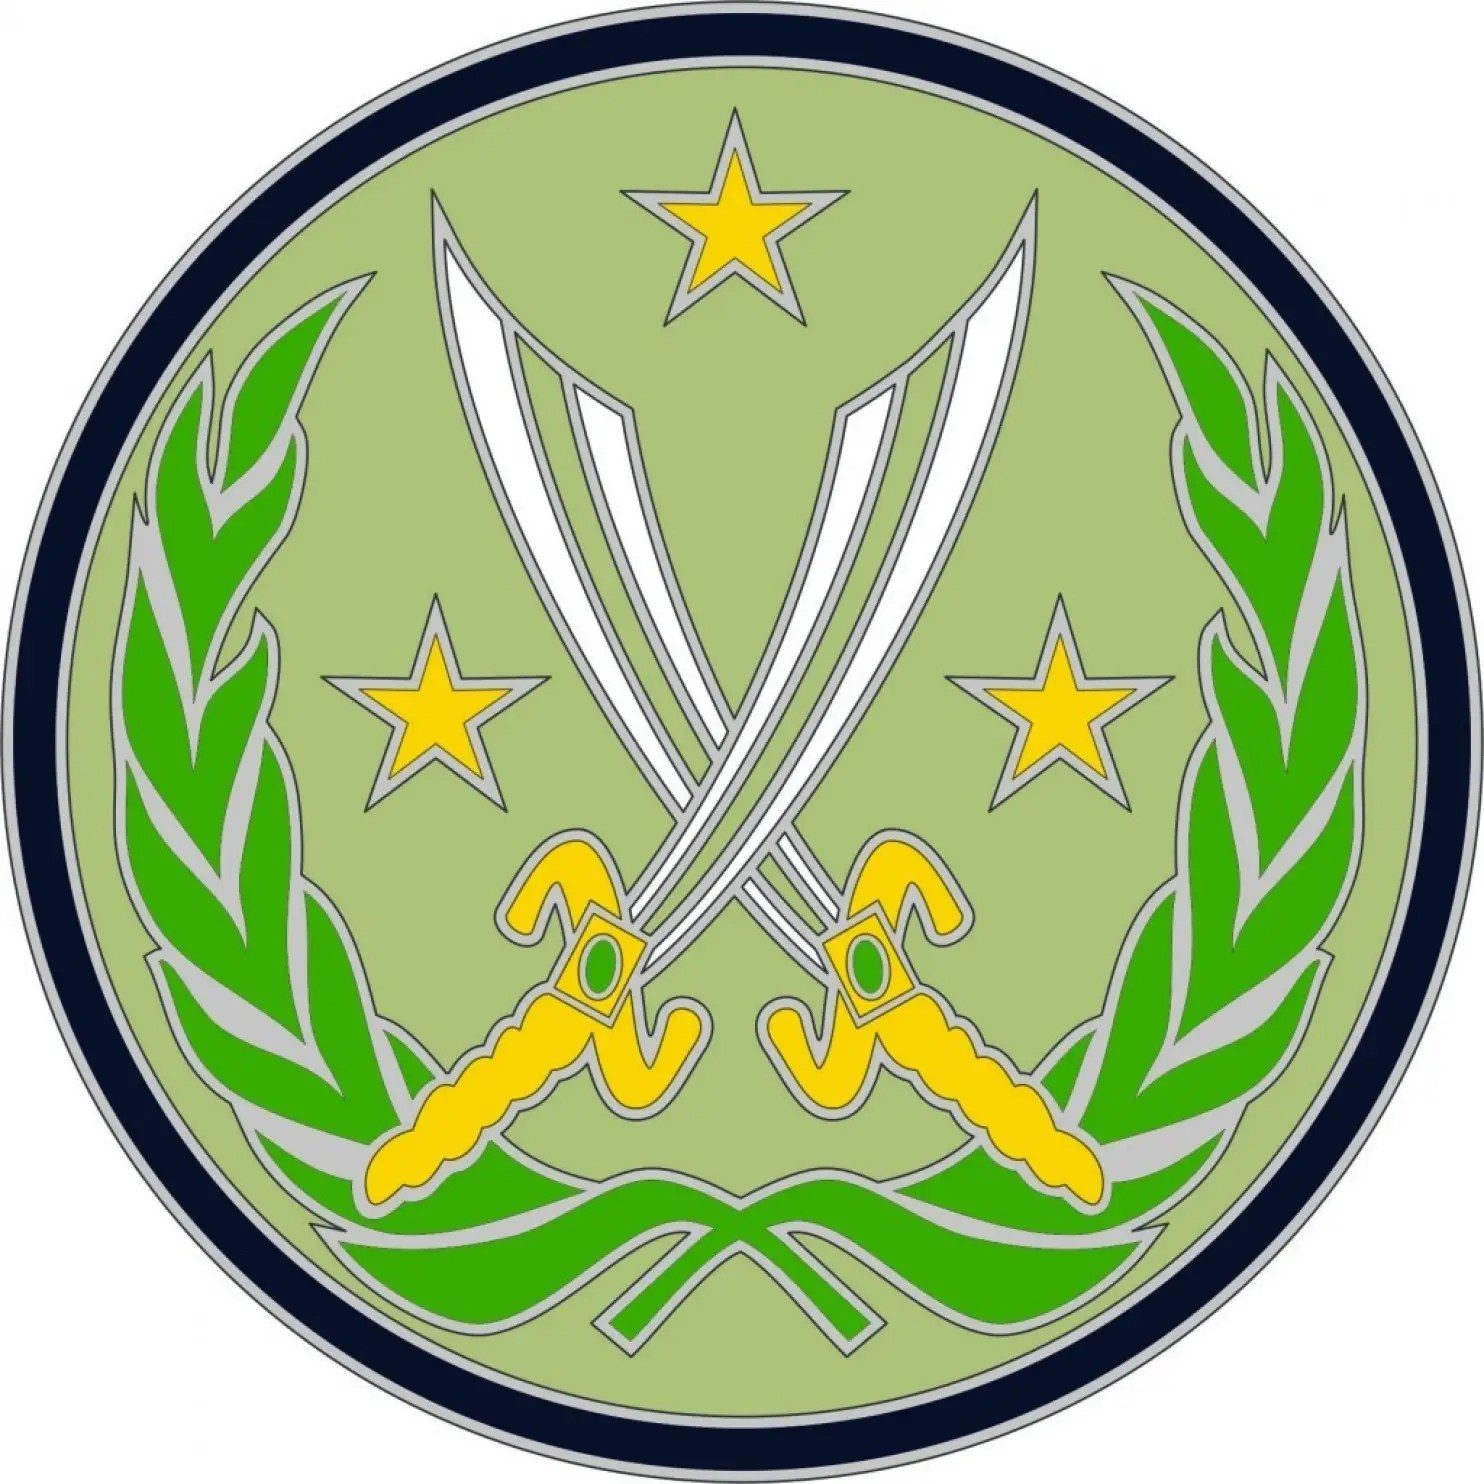 Operation Inherent Resolve combat patch.